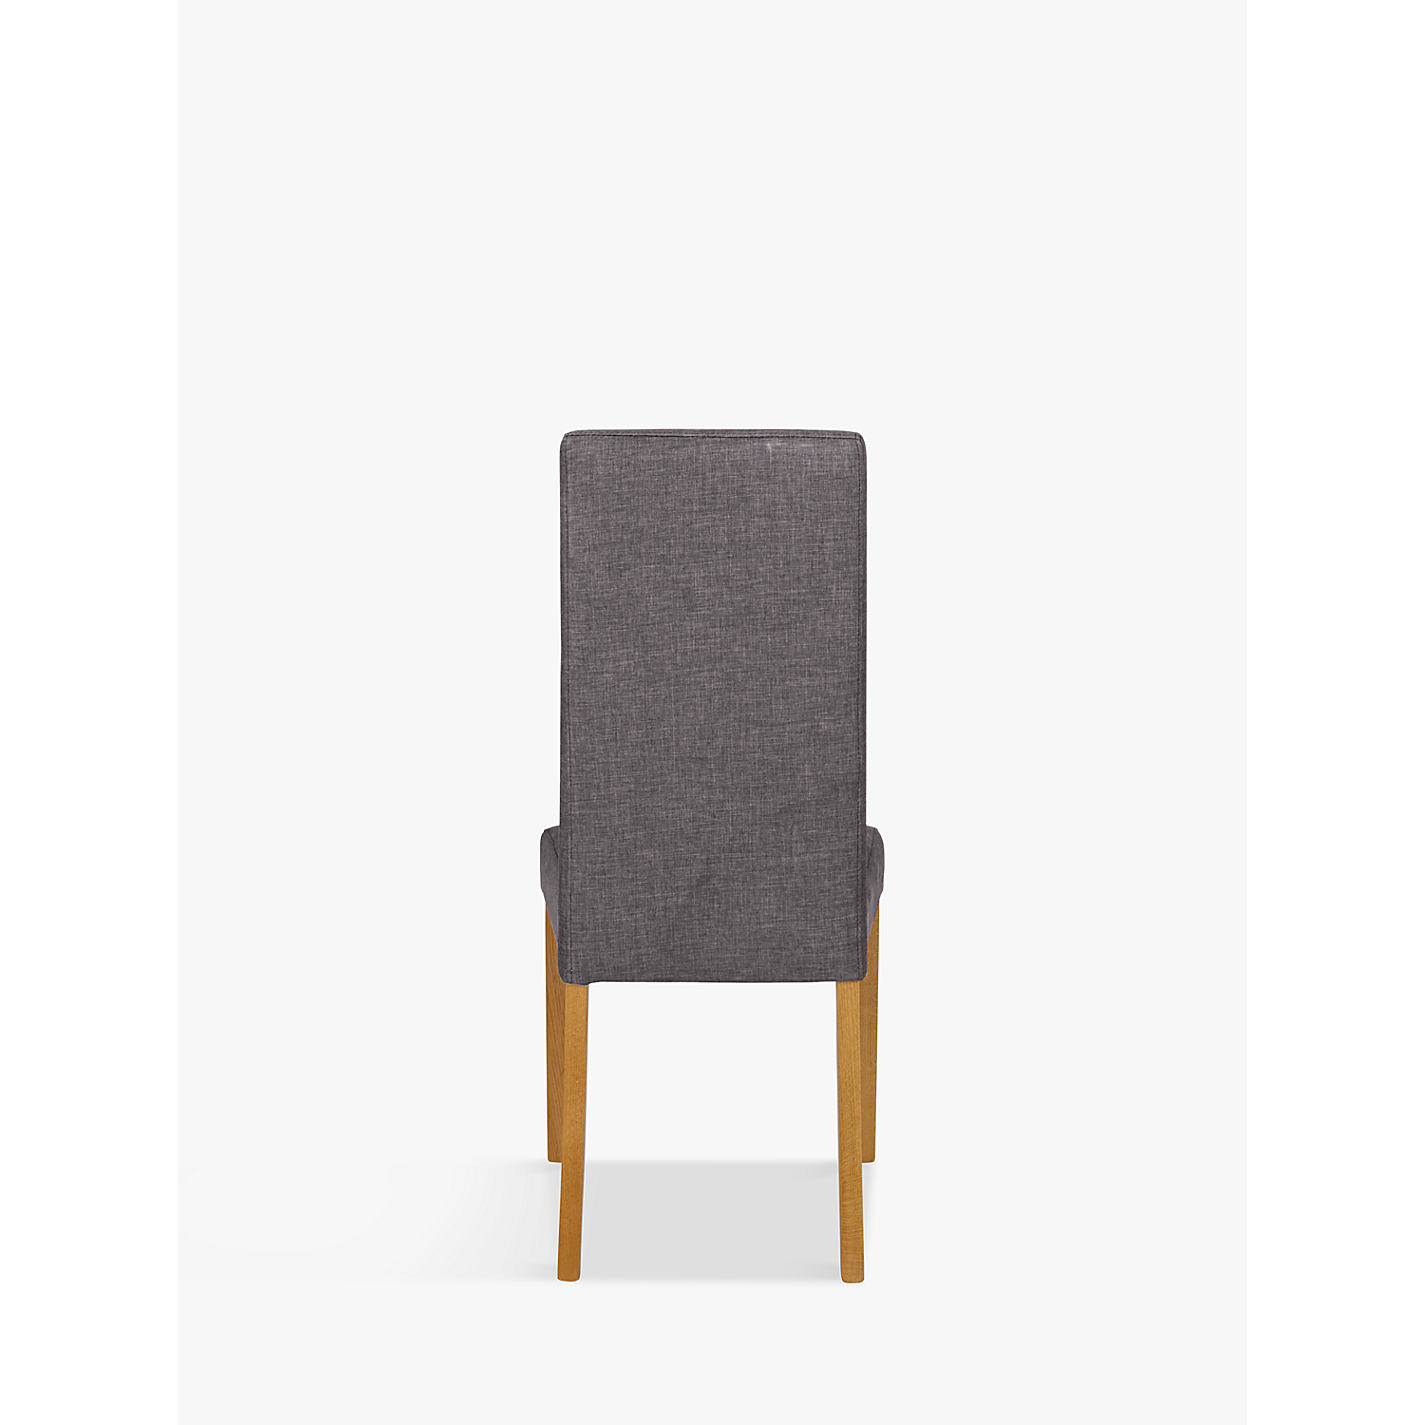 Medium size of linen dining chair covers nz seat john for Patio furniture covers john lewis